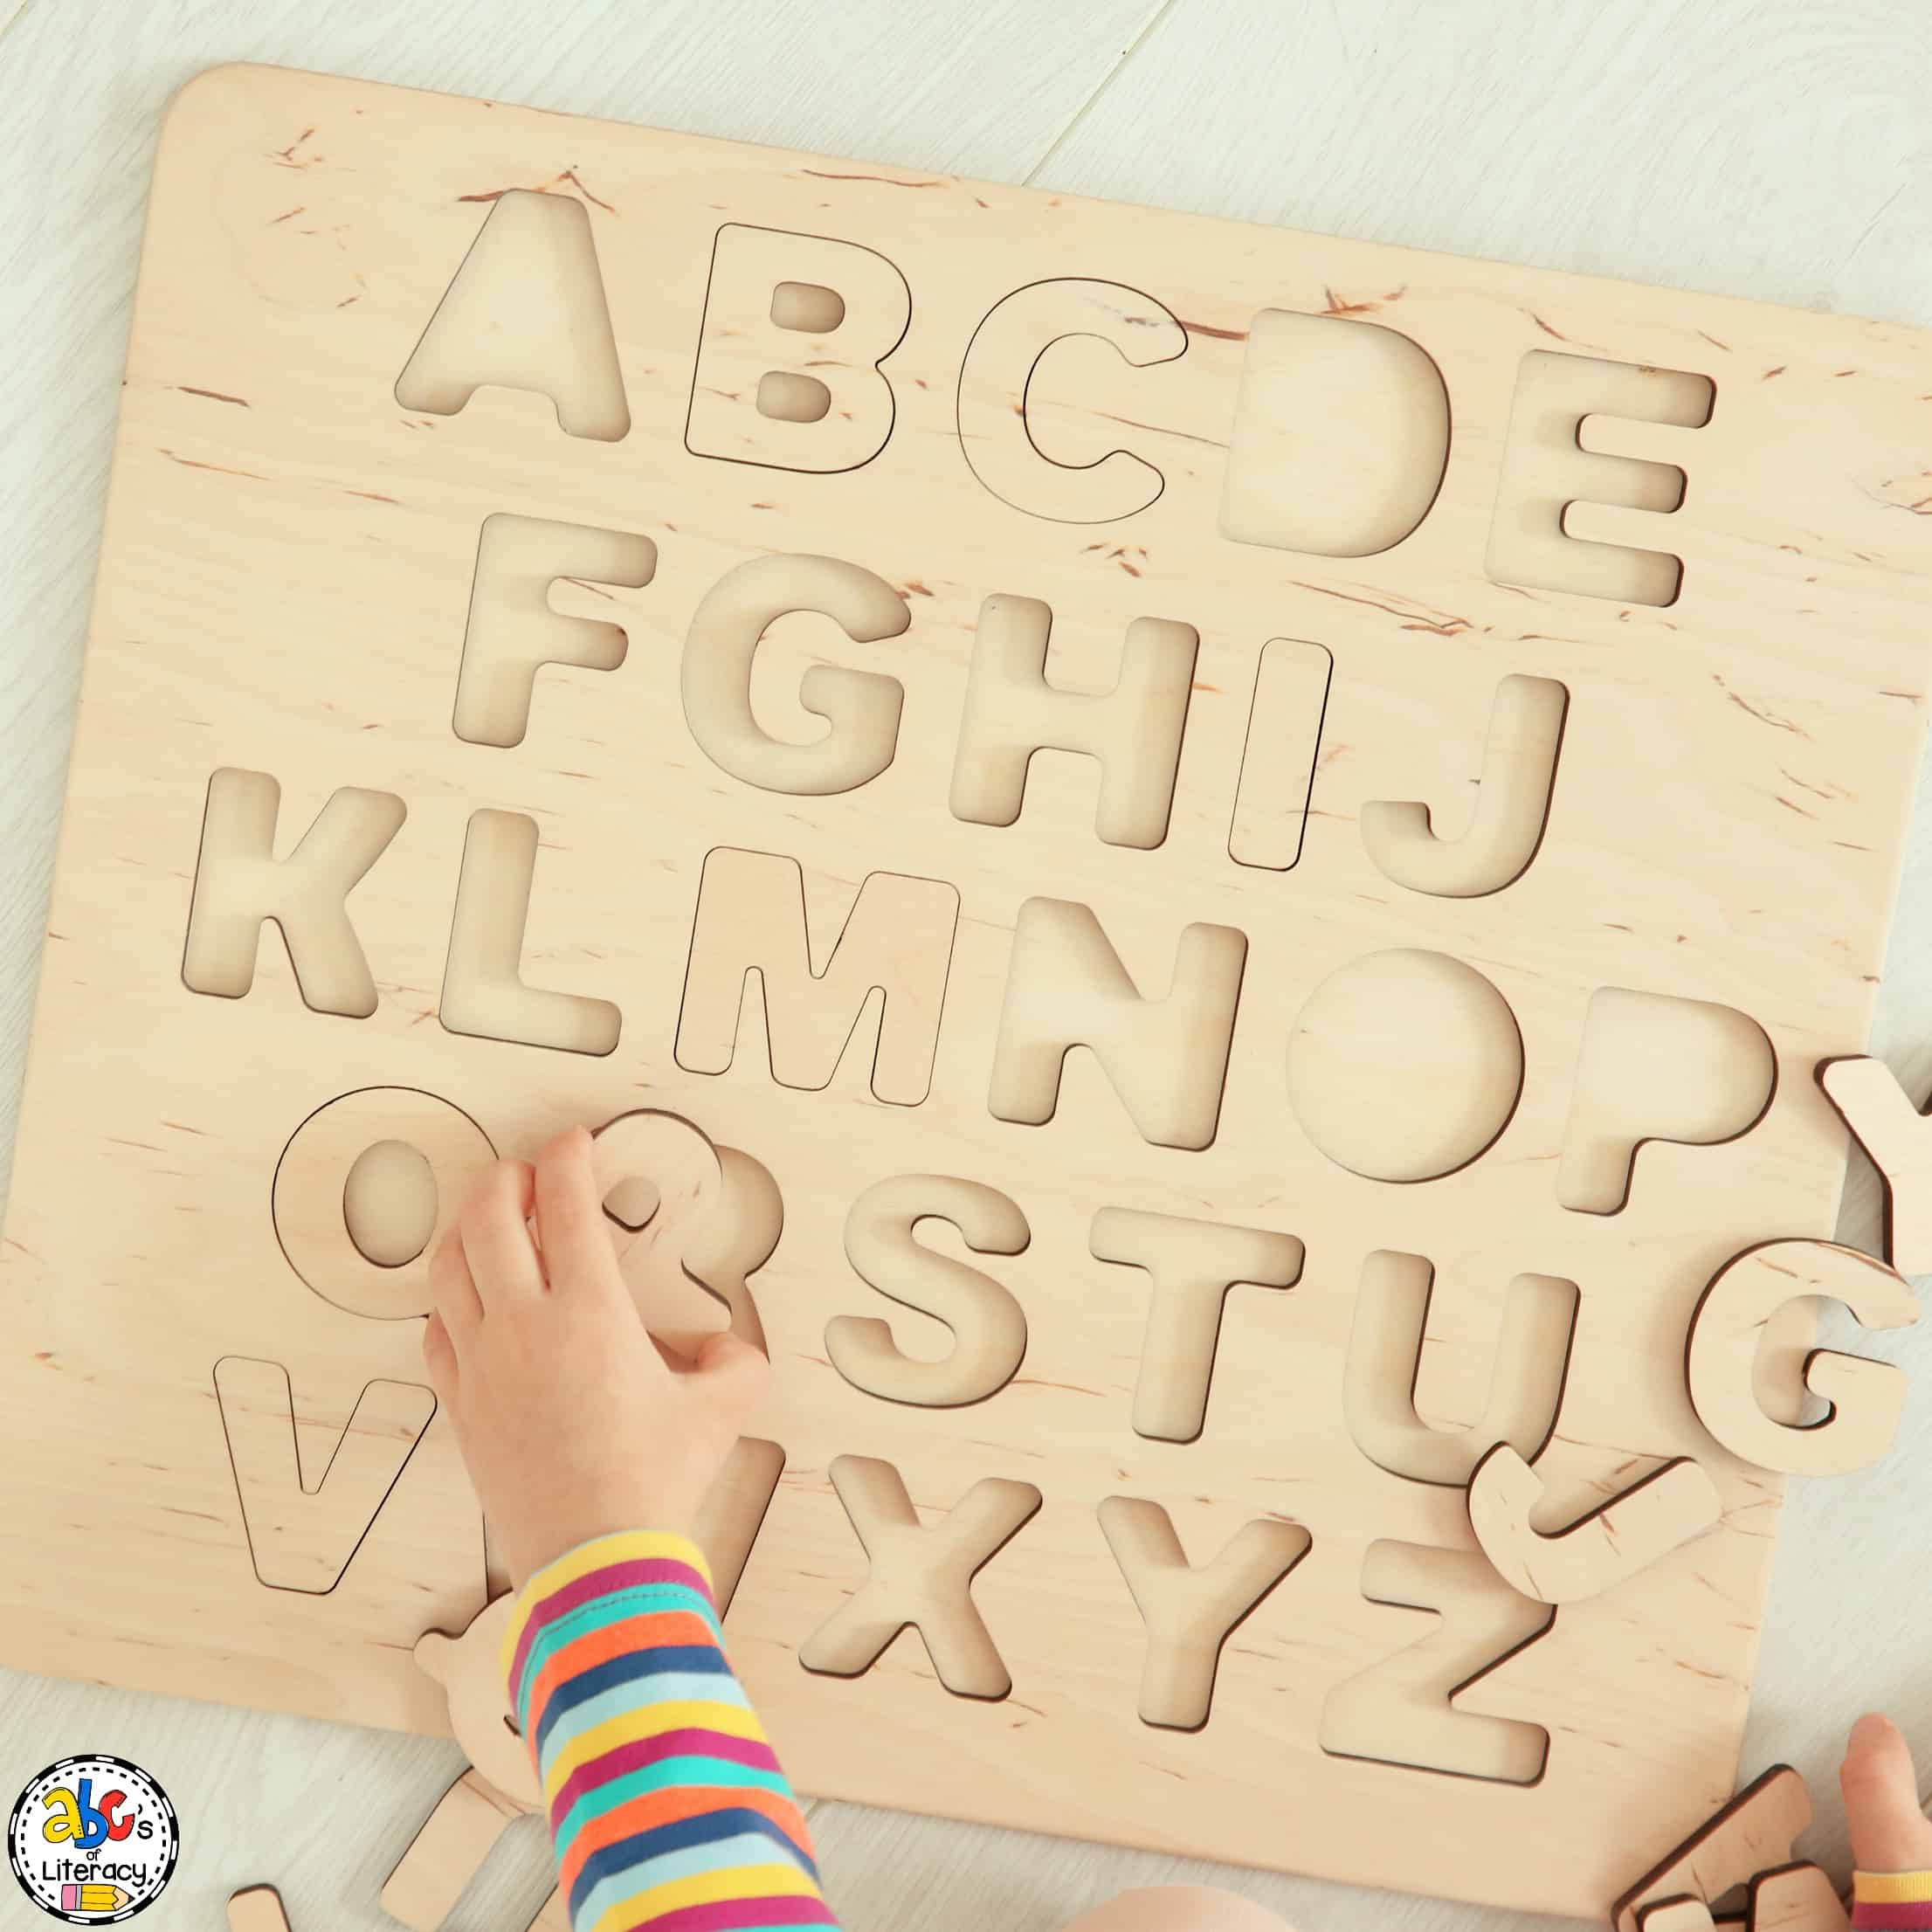 How To Teach The ABC's